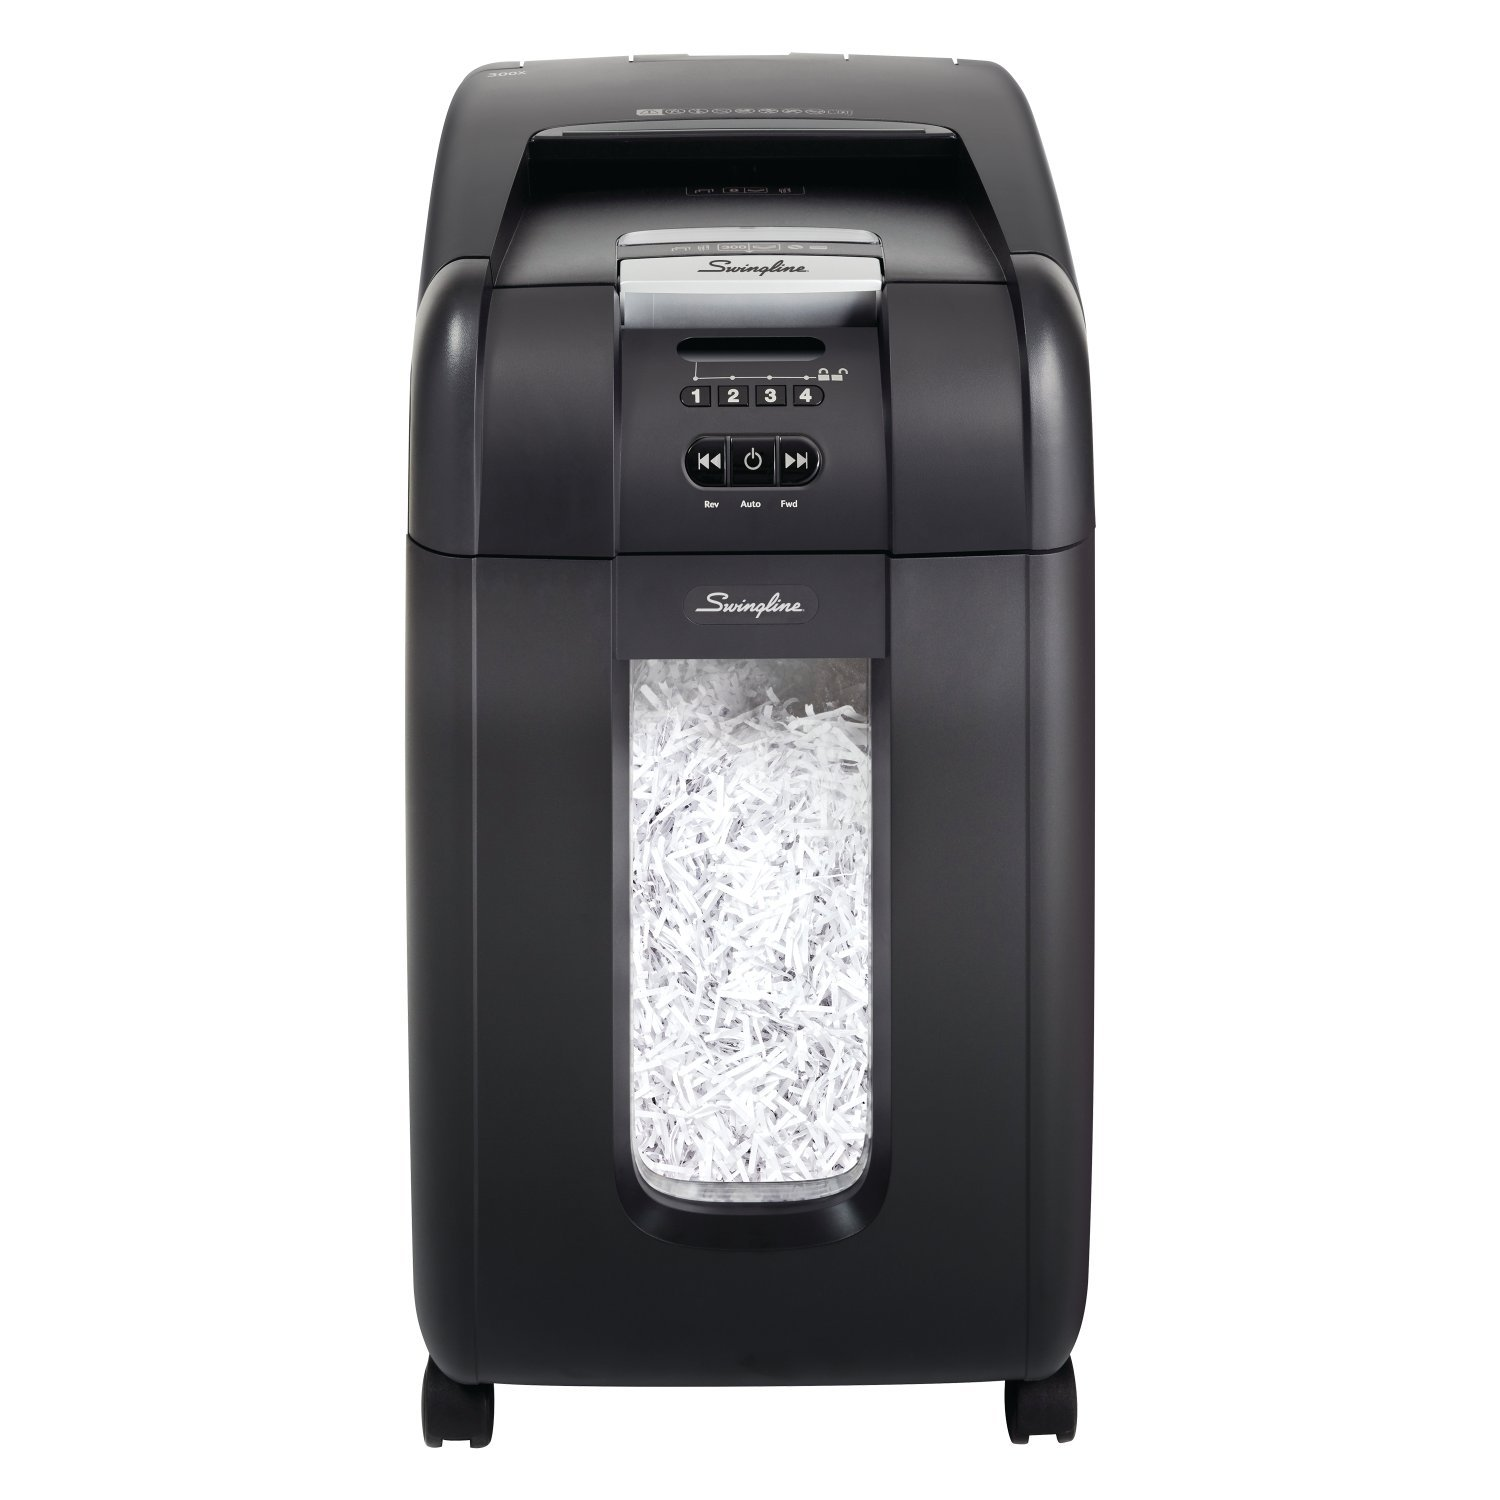 Swingline Paper Shredder, SmarTech Enabled, Auto Feed, 300 Sheet Capacity, Super Cross-Cut, 5-10 Users, Stack-and-Shred 300X (1757576S)